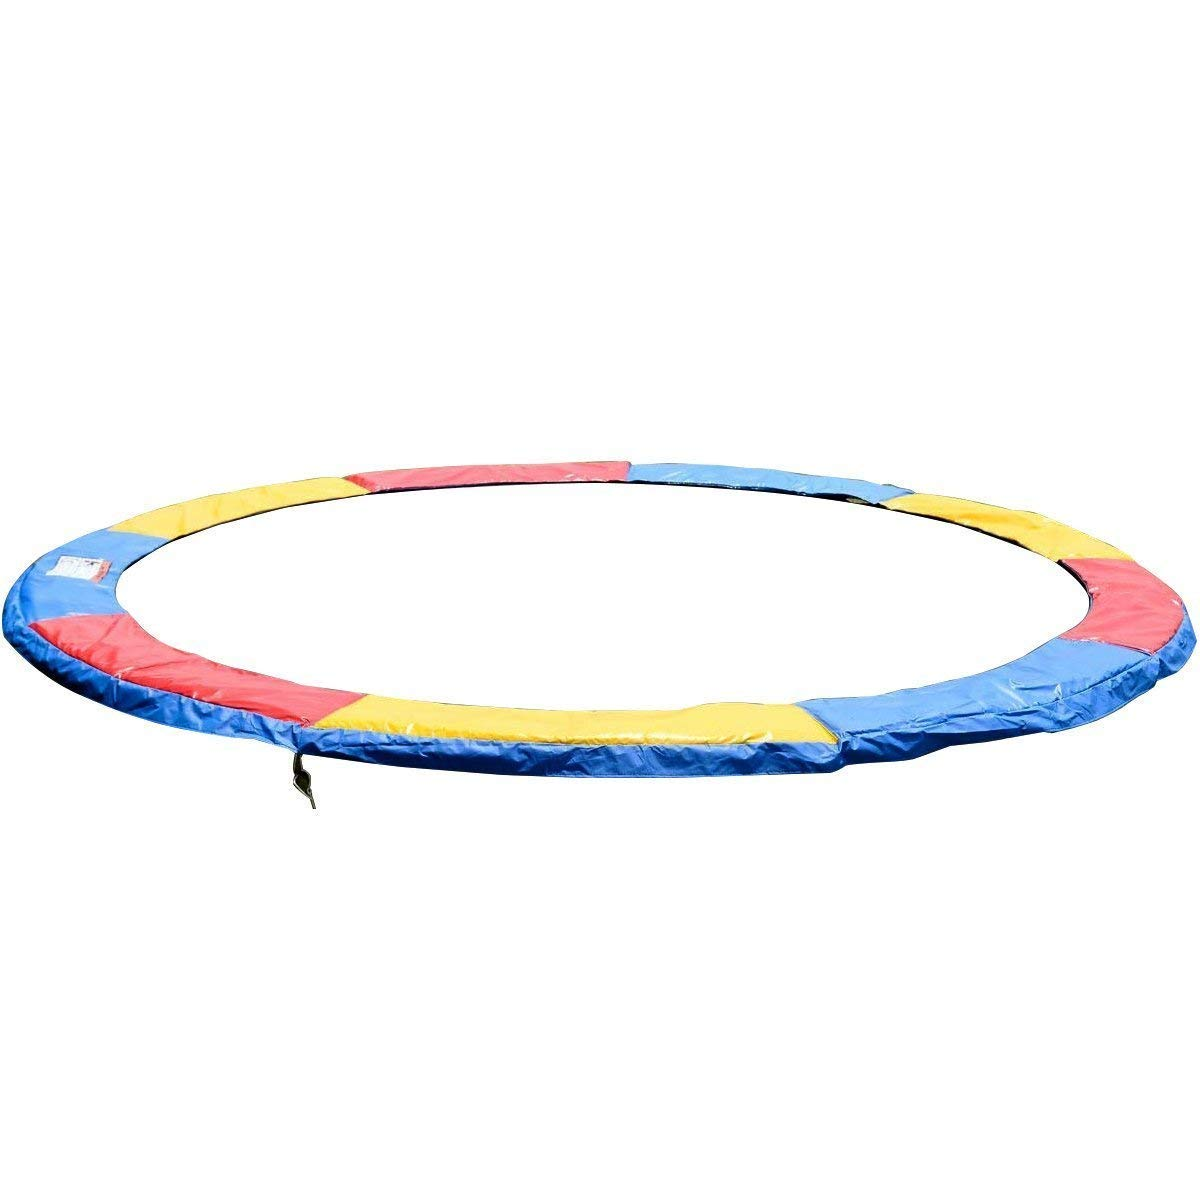 GYMAX Trampoline Pads, 12' Edge Cover Springs Safety Frame Pad Protection Cover Pad Trampoline Accessories (Muticolor)